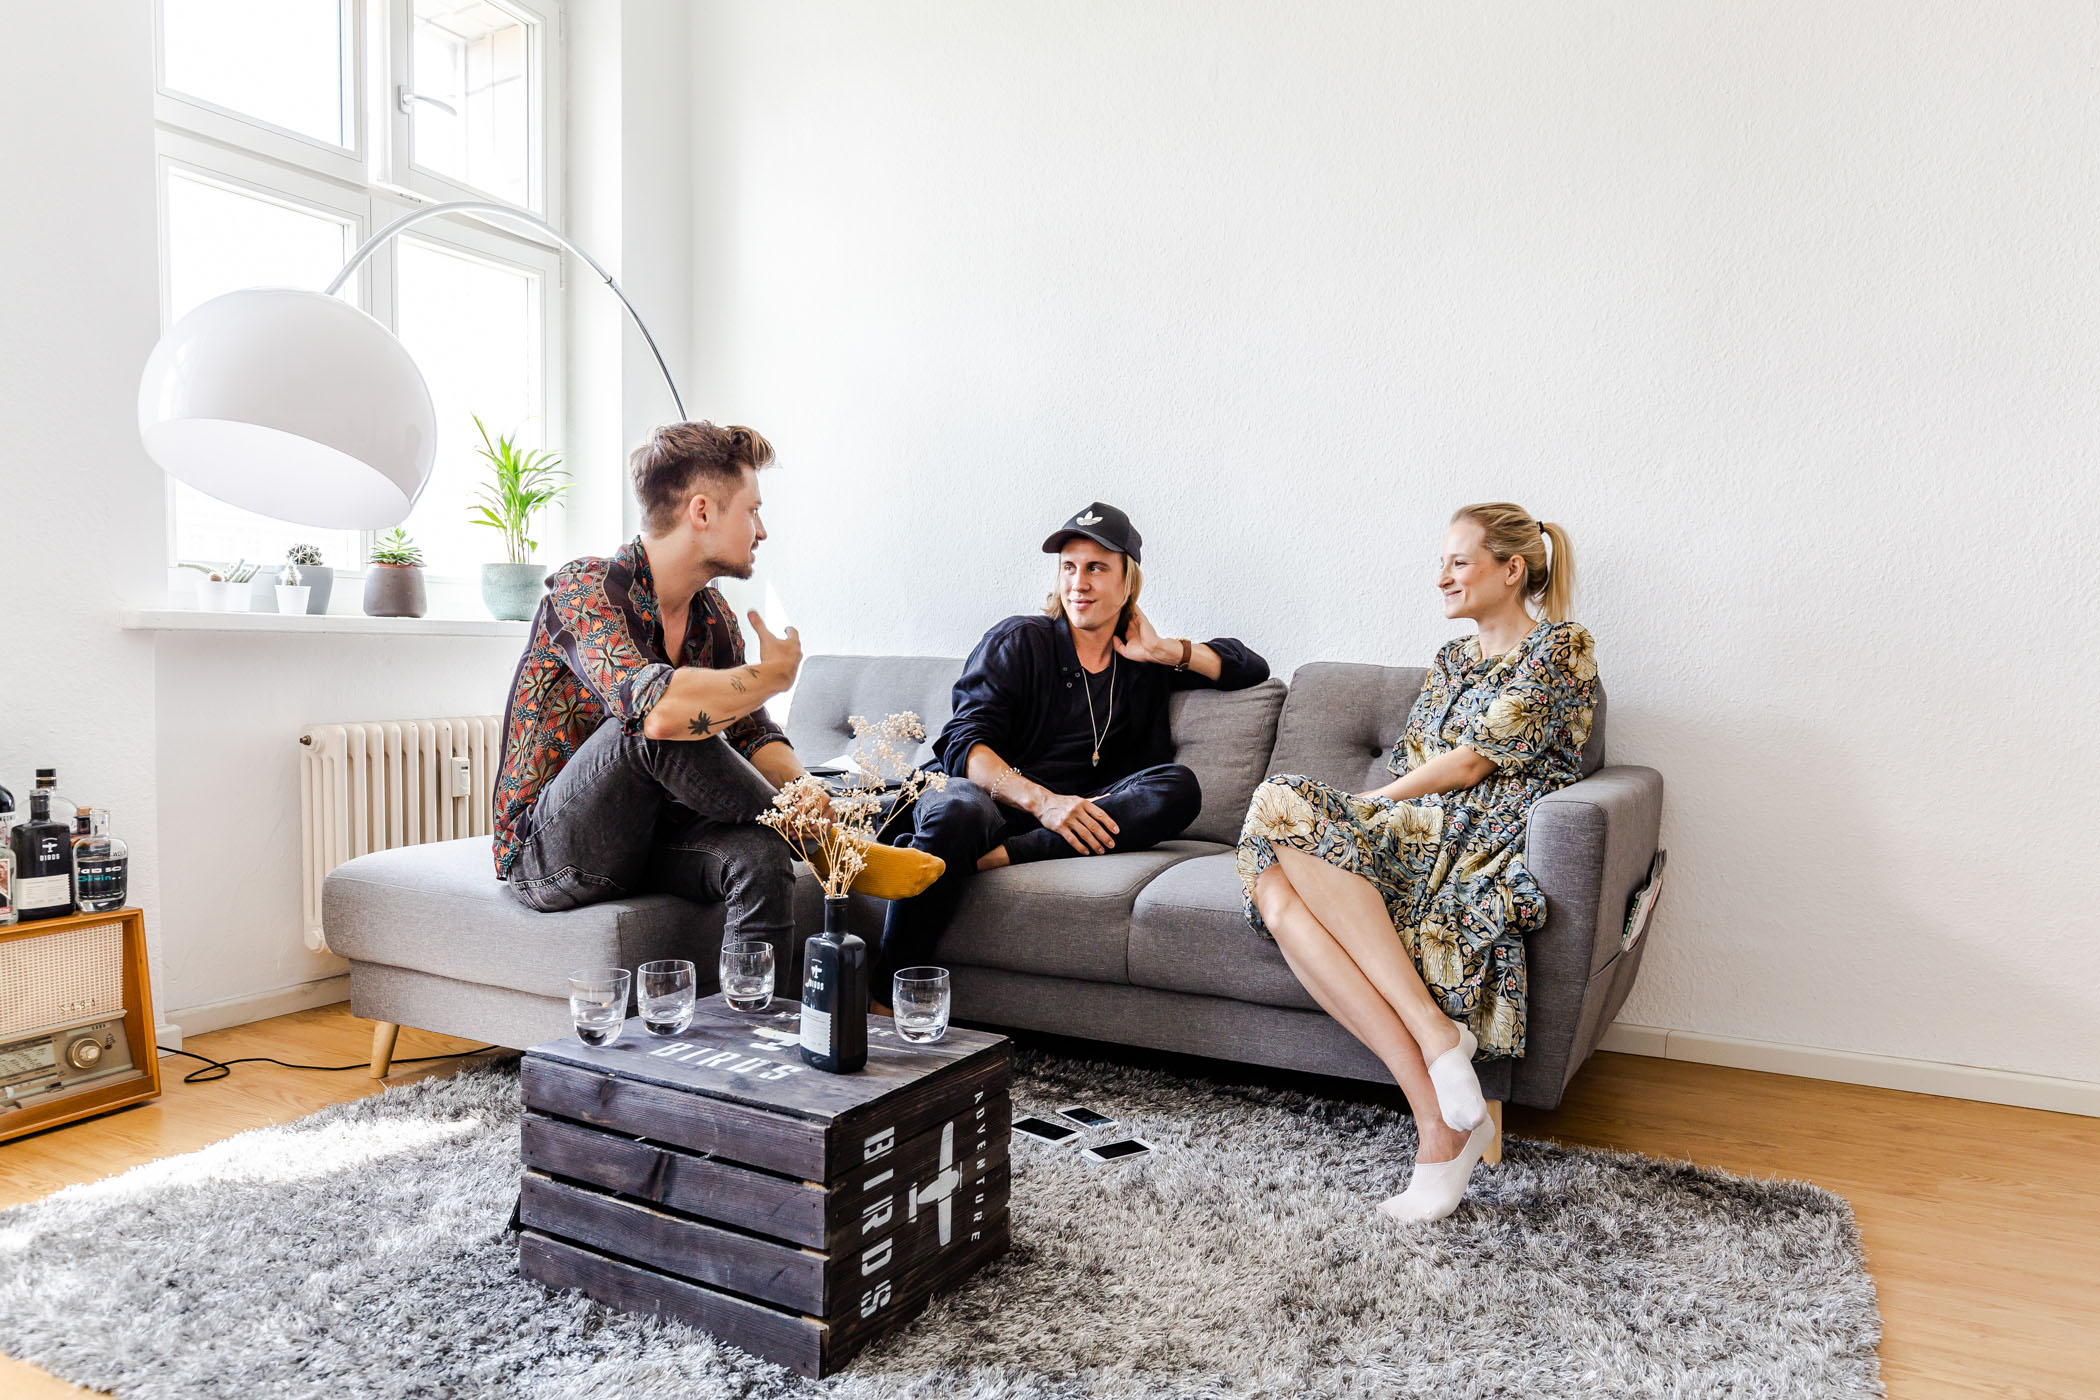 homtastics-Interview-Gruender-Birds-Gin-Berlin